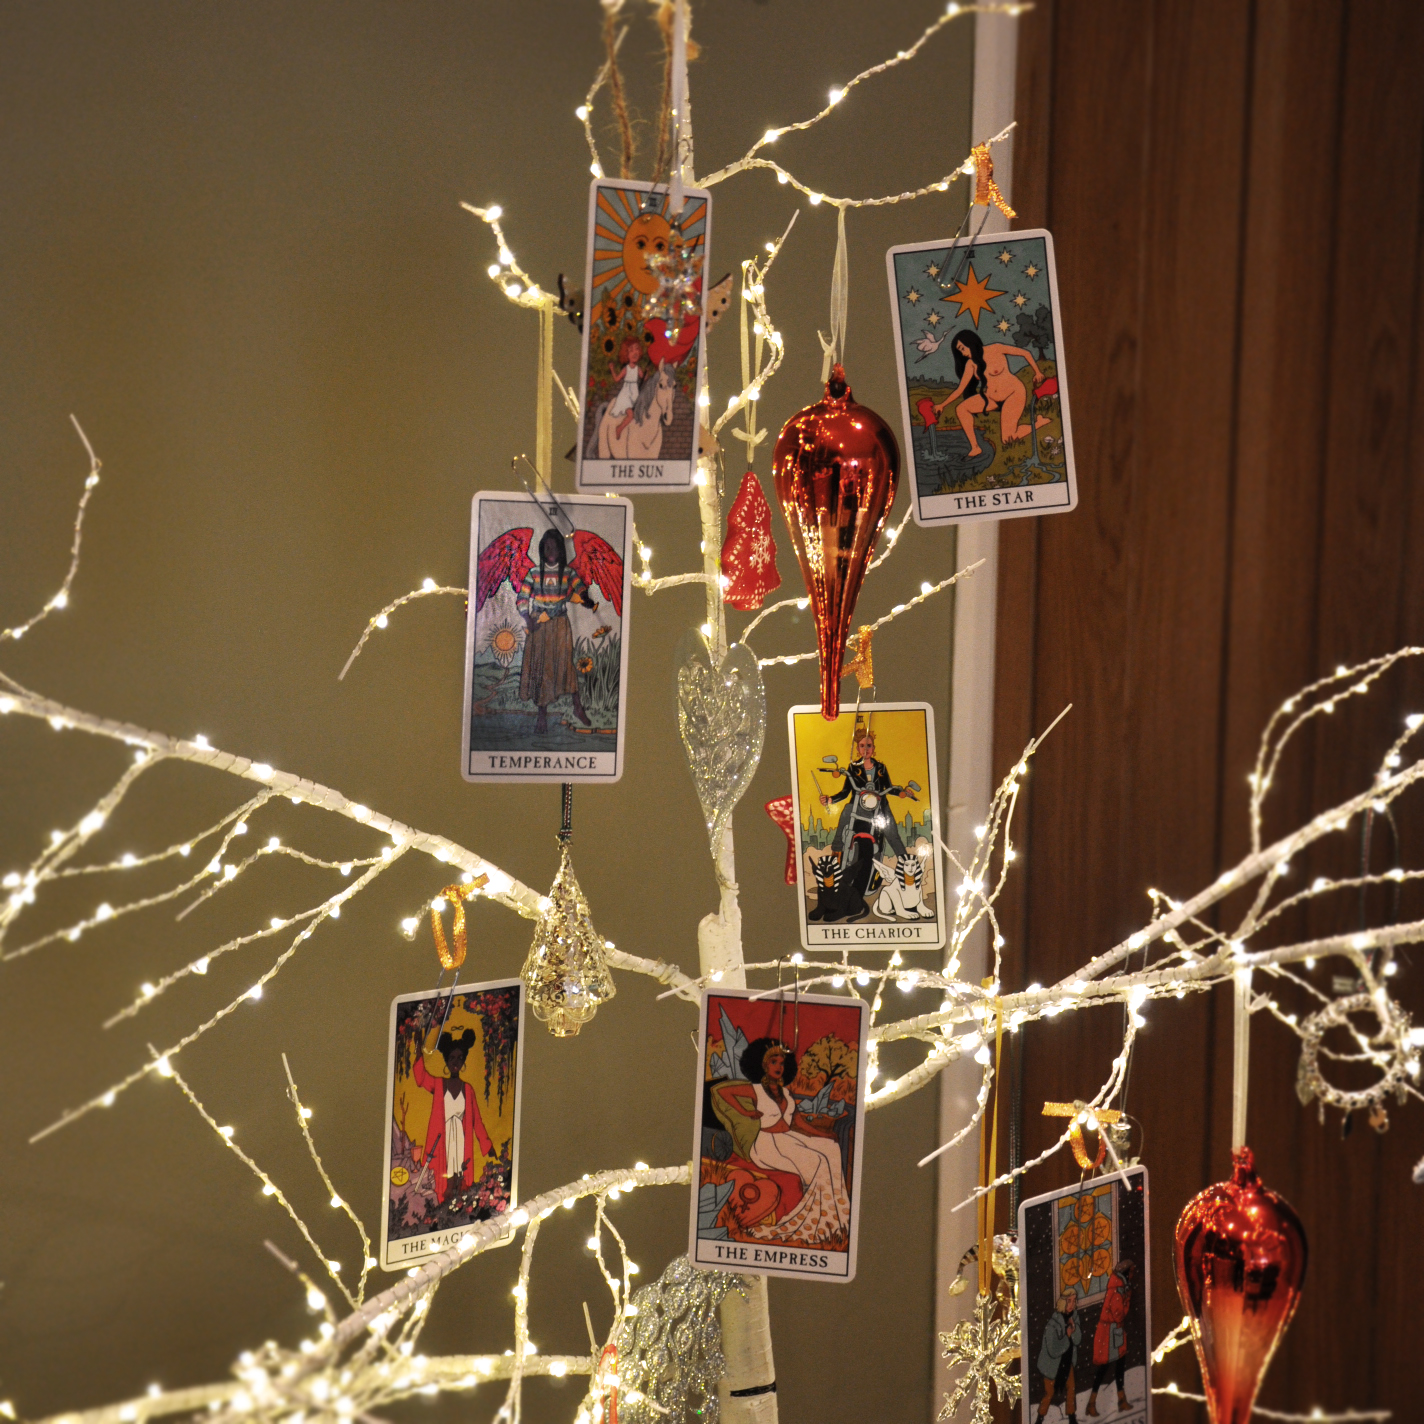 A Christmas Tree with tarot card ornaments from the Modern Witch Tarot deck